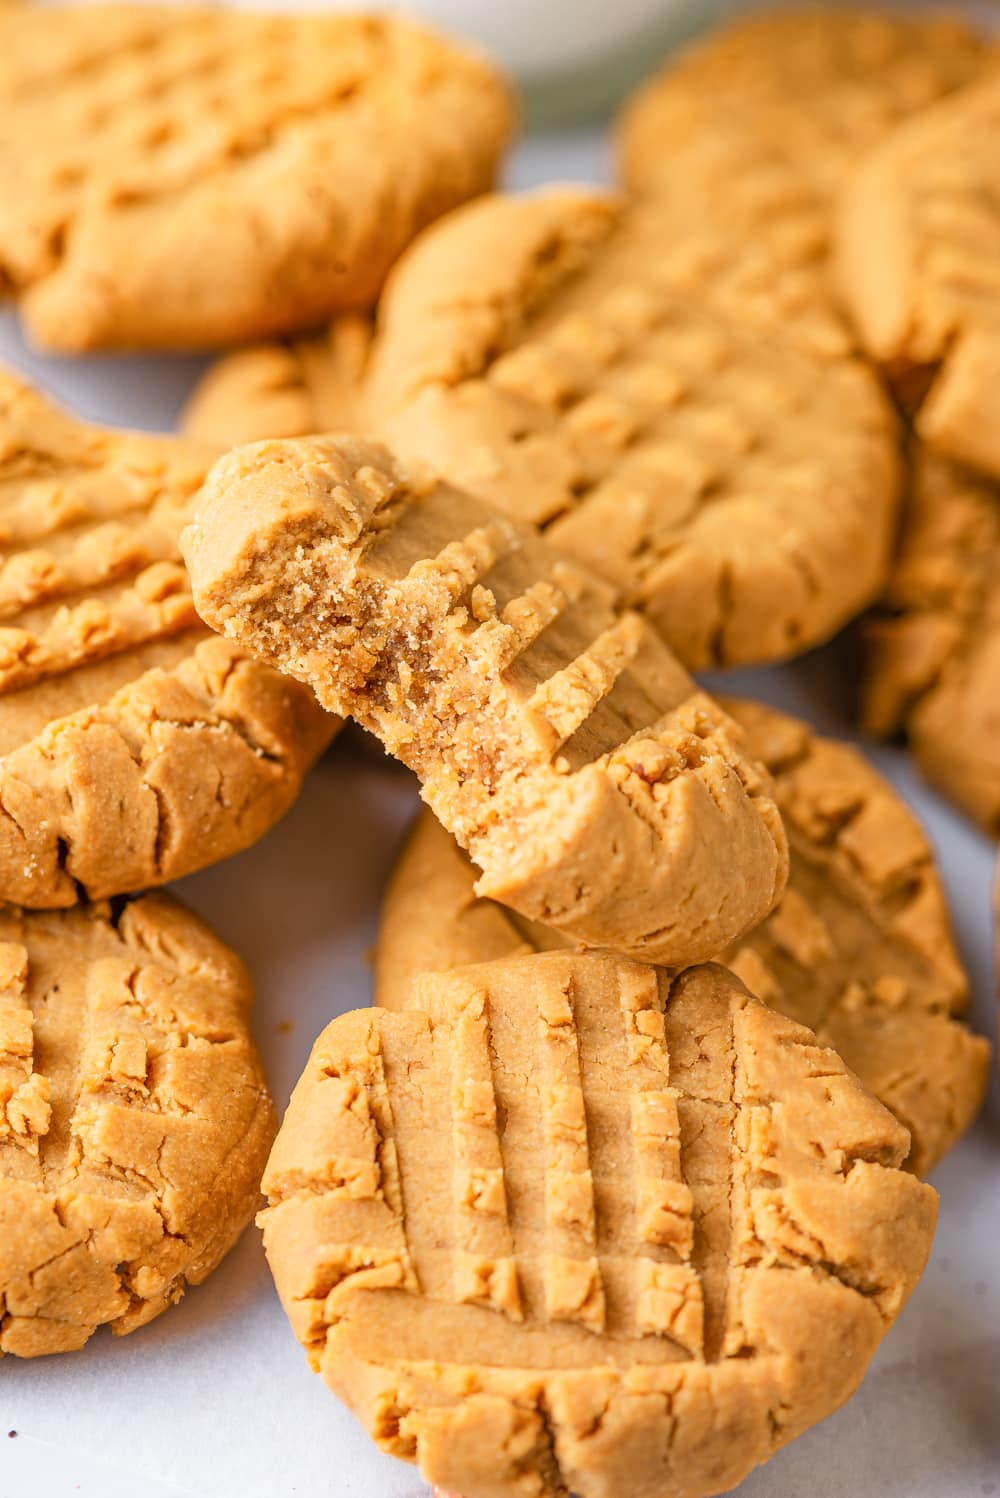 A bunch of vegan peanut butter cookies scattered overlapping one another. One cookie with a bite out of it is at the front set on top of the other cookies. The inside of the bitten cookie is showing. All of the cookies are on a white counter.